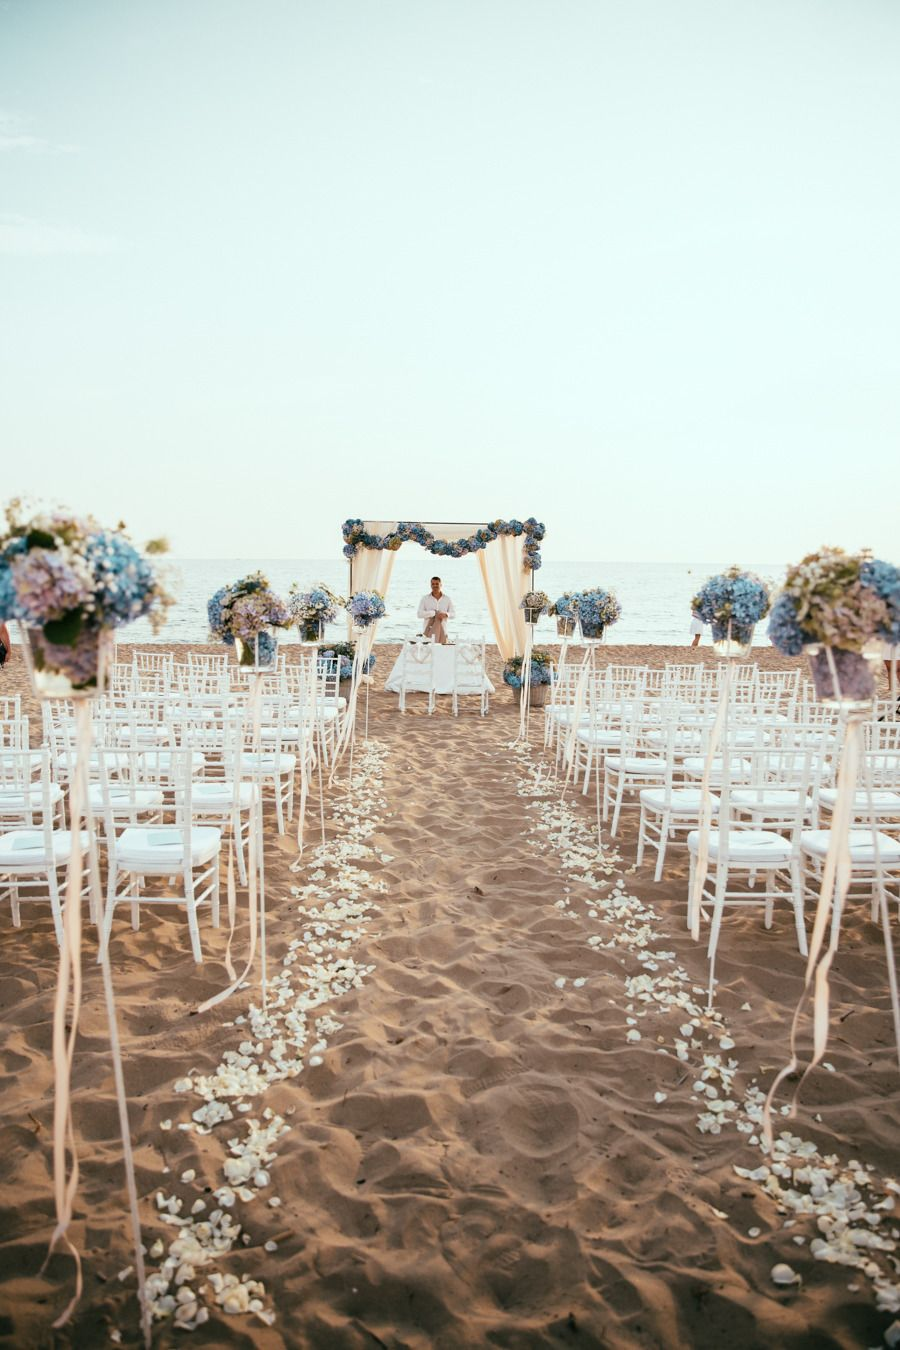 A Seaside Italian Wedding With Images Wedding Beach Ceremony